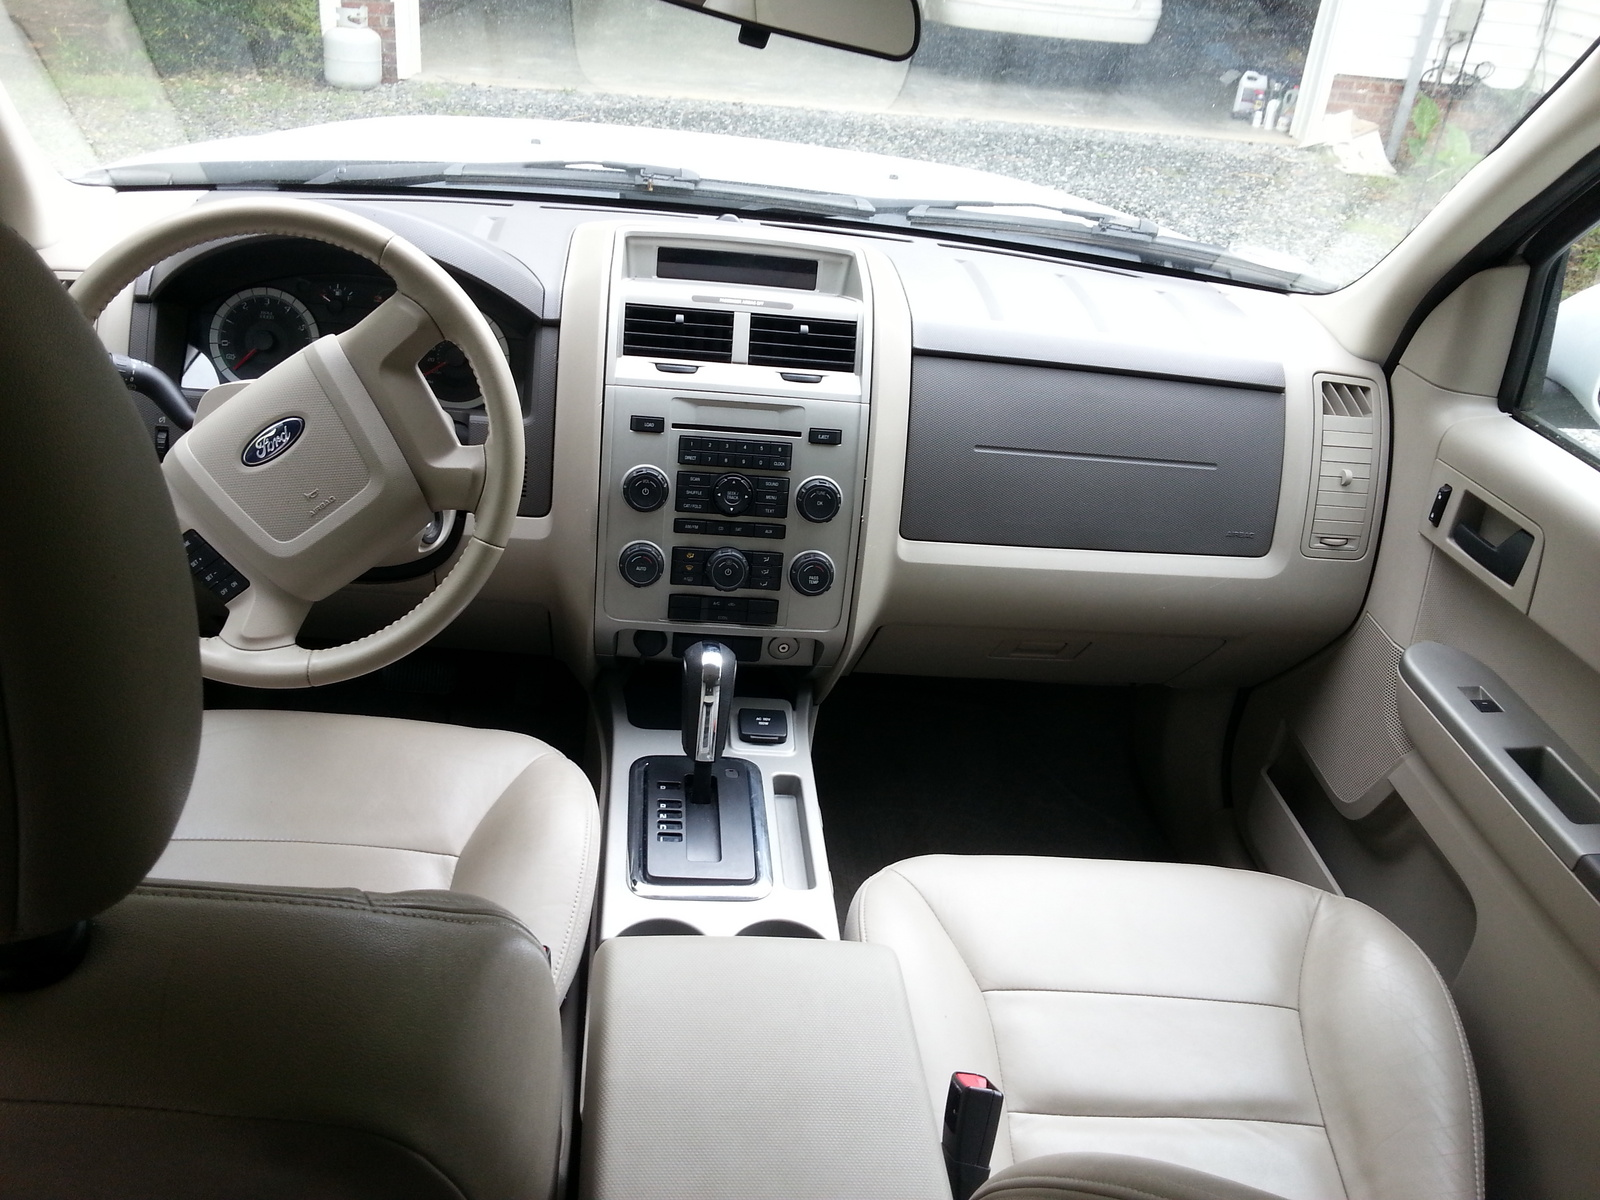 2008 Ford Escape Hybrid Pictures Cargurus